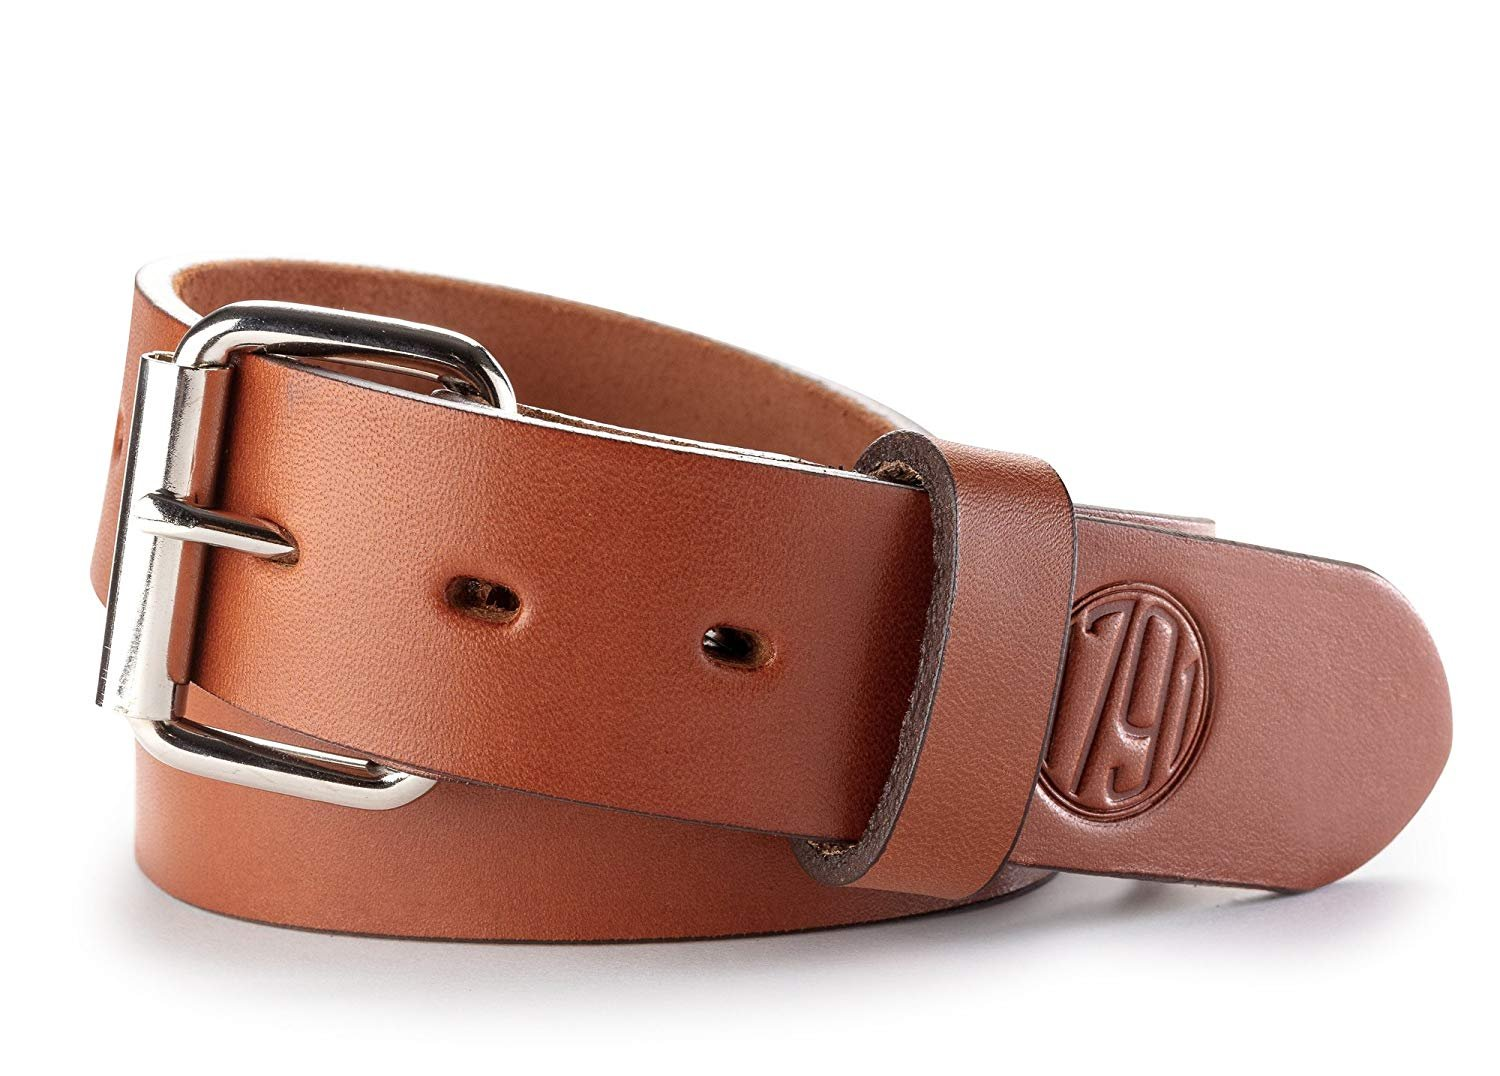 1791 GUNLEATHER BLT-01-48/52-CBR-A Belt Classic Brown 52 (Size 48 Pants) by 1791 GUNLEATHER